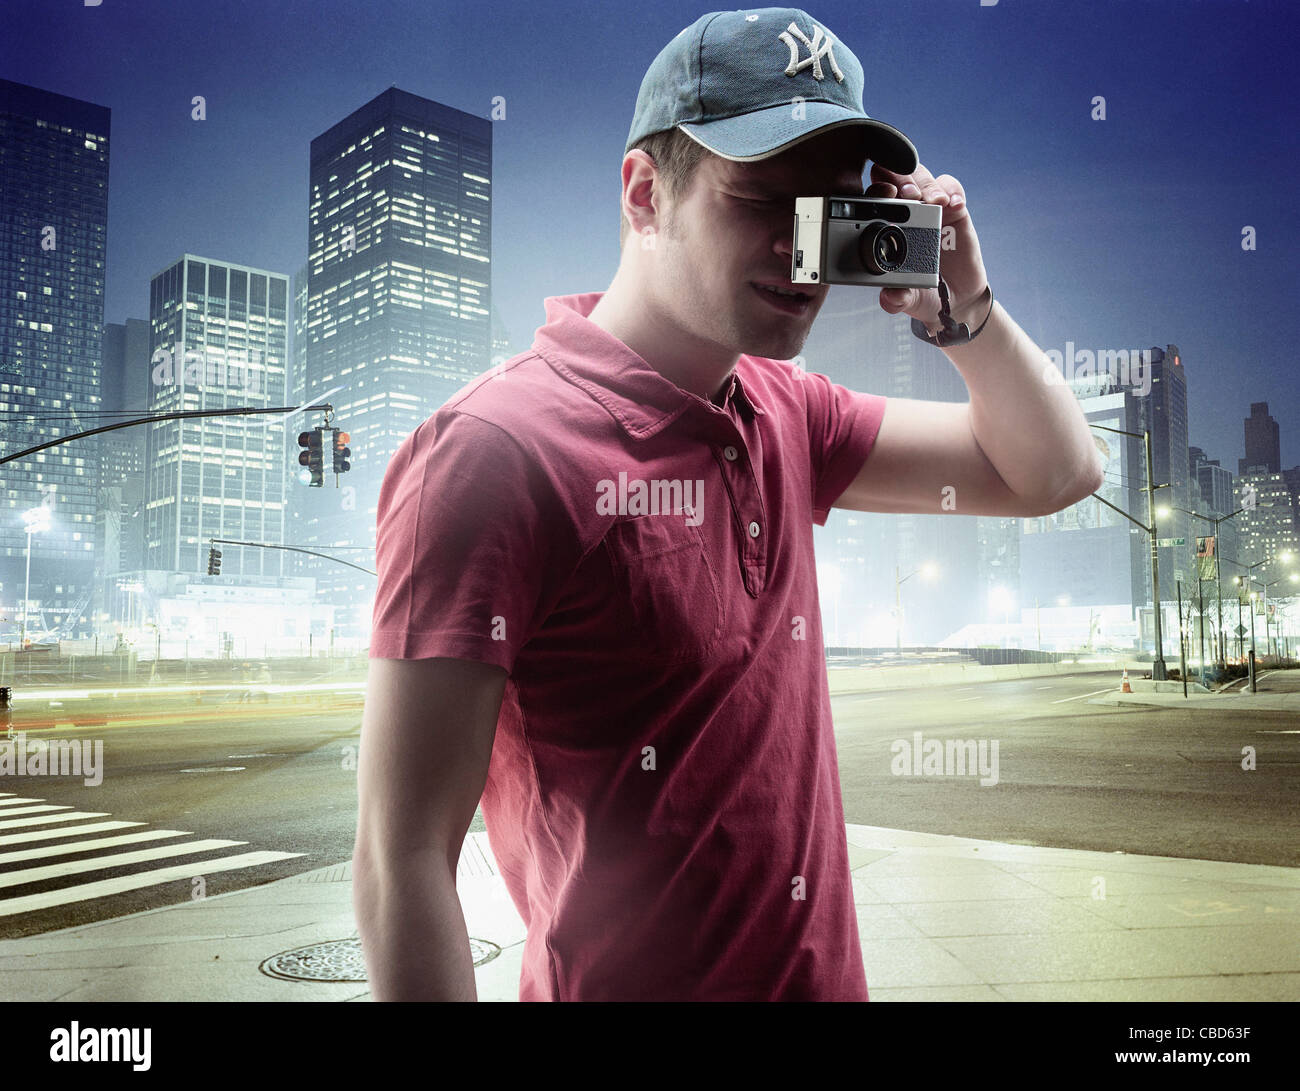 Man taking pictures in city center - Stock Image